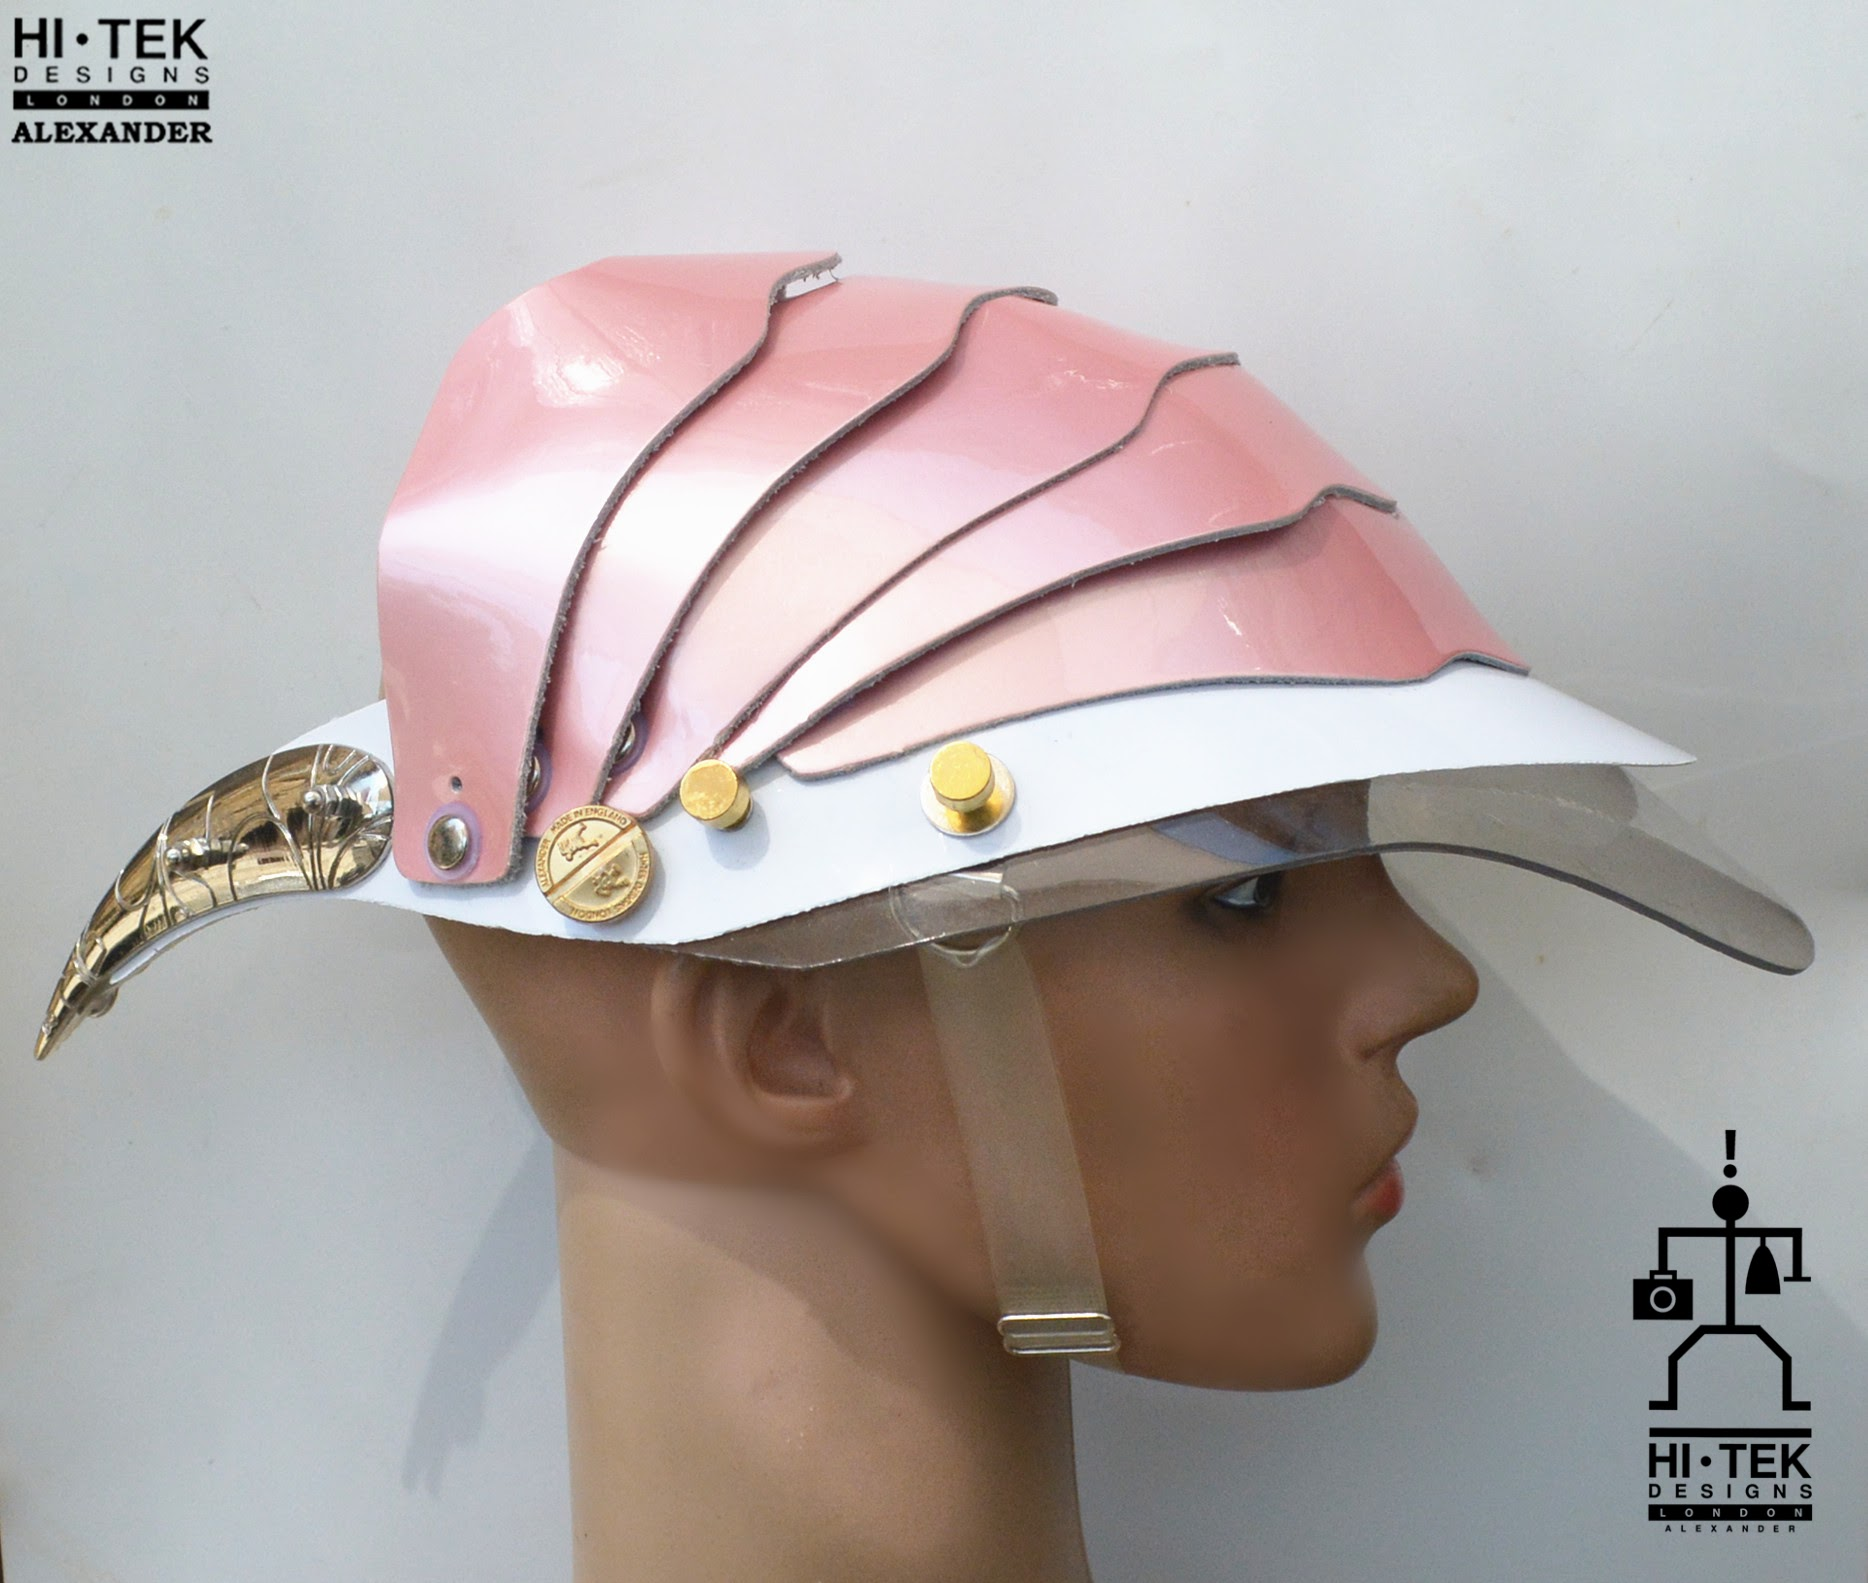 Unusual Head Wear futuristic, mask hat headpiece helmet modern Steampunk wearable art pink with horns